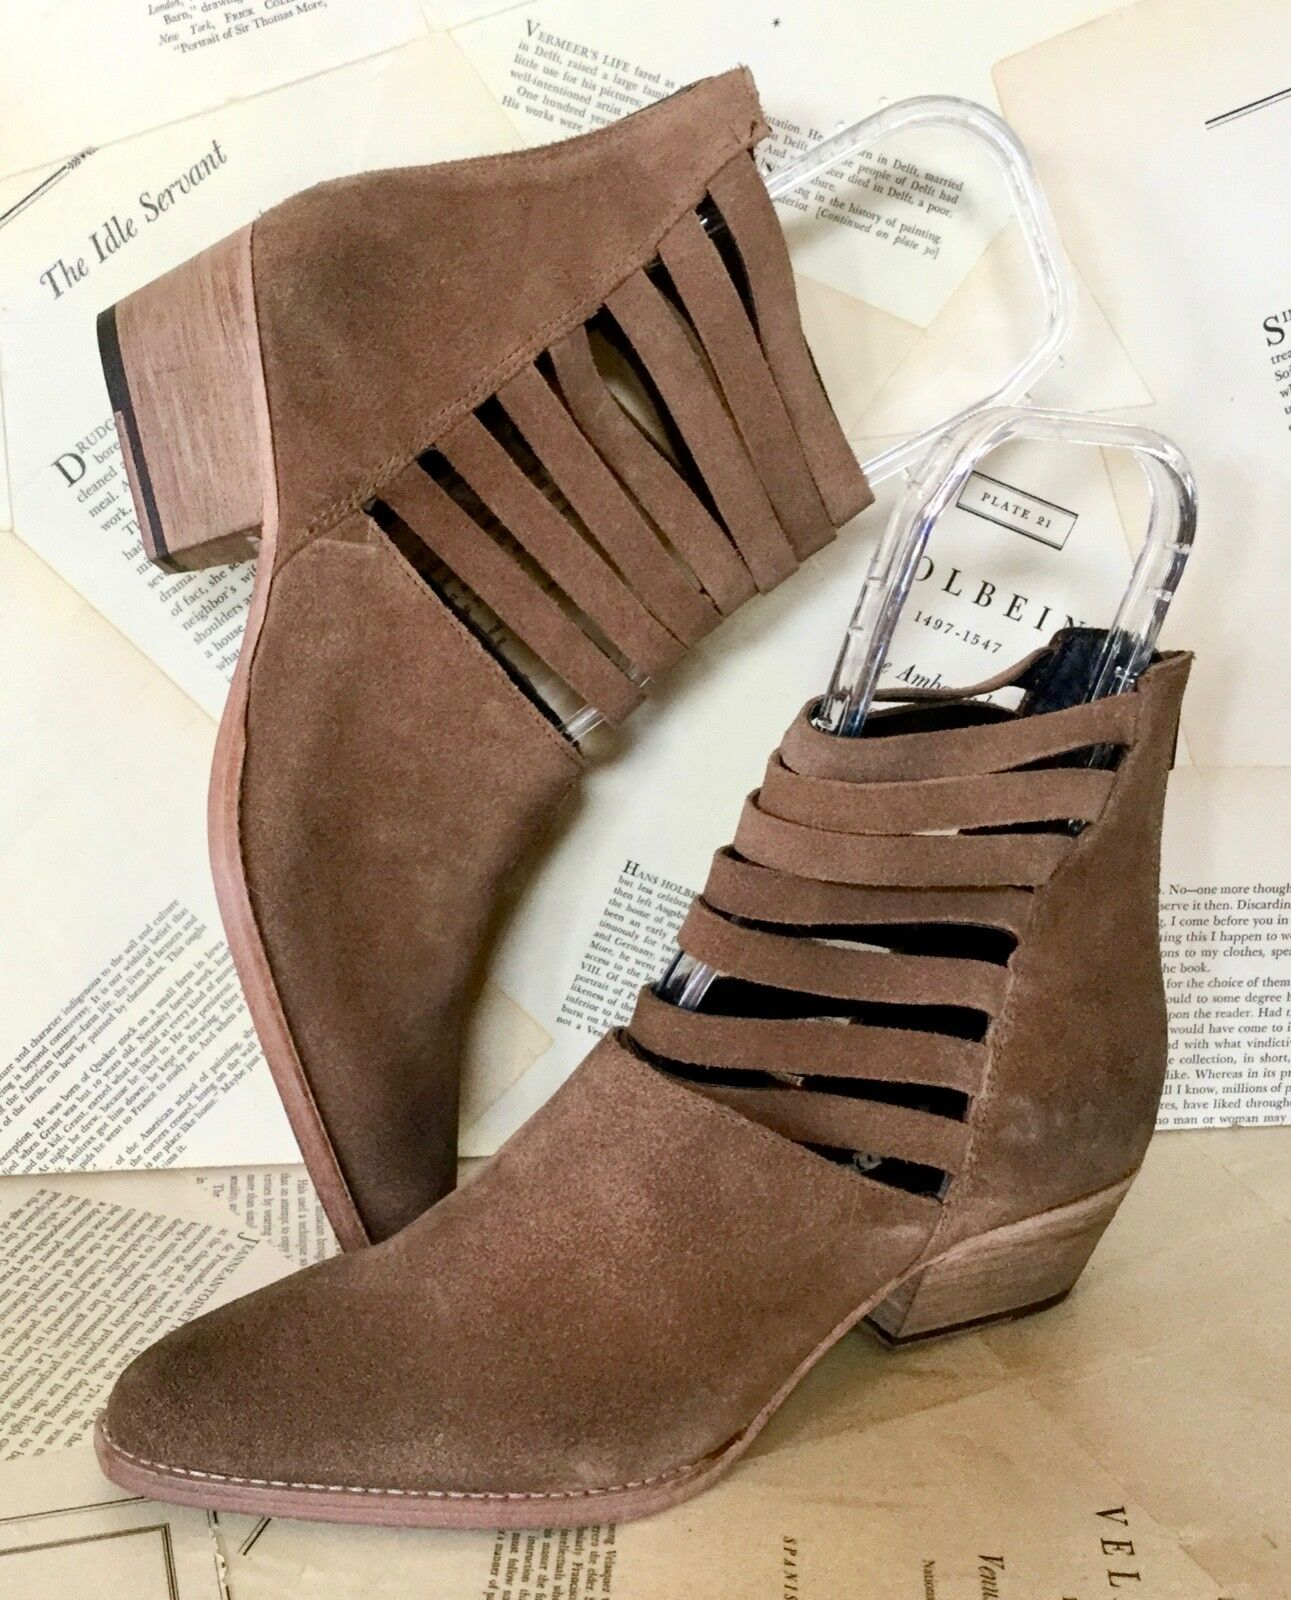 si affrettò a vedere NEW Free People tan Marrone Suede Suede Suede Strappy Cut Out Back Zip Ankle avvio 40 9- 9-5  nuovo di marca